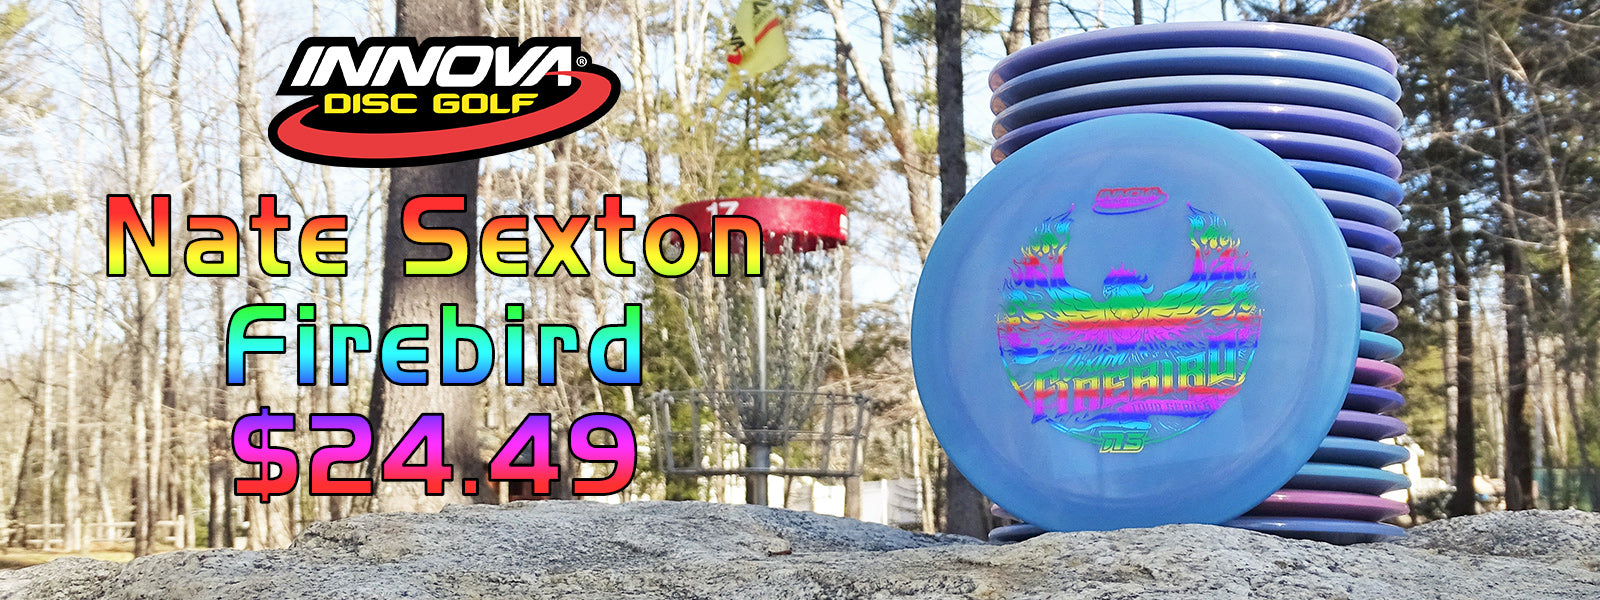 innova nate sexton firebirds stacked ona a rock at sabattus disc golf